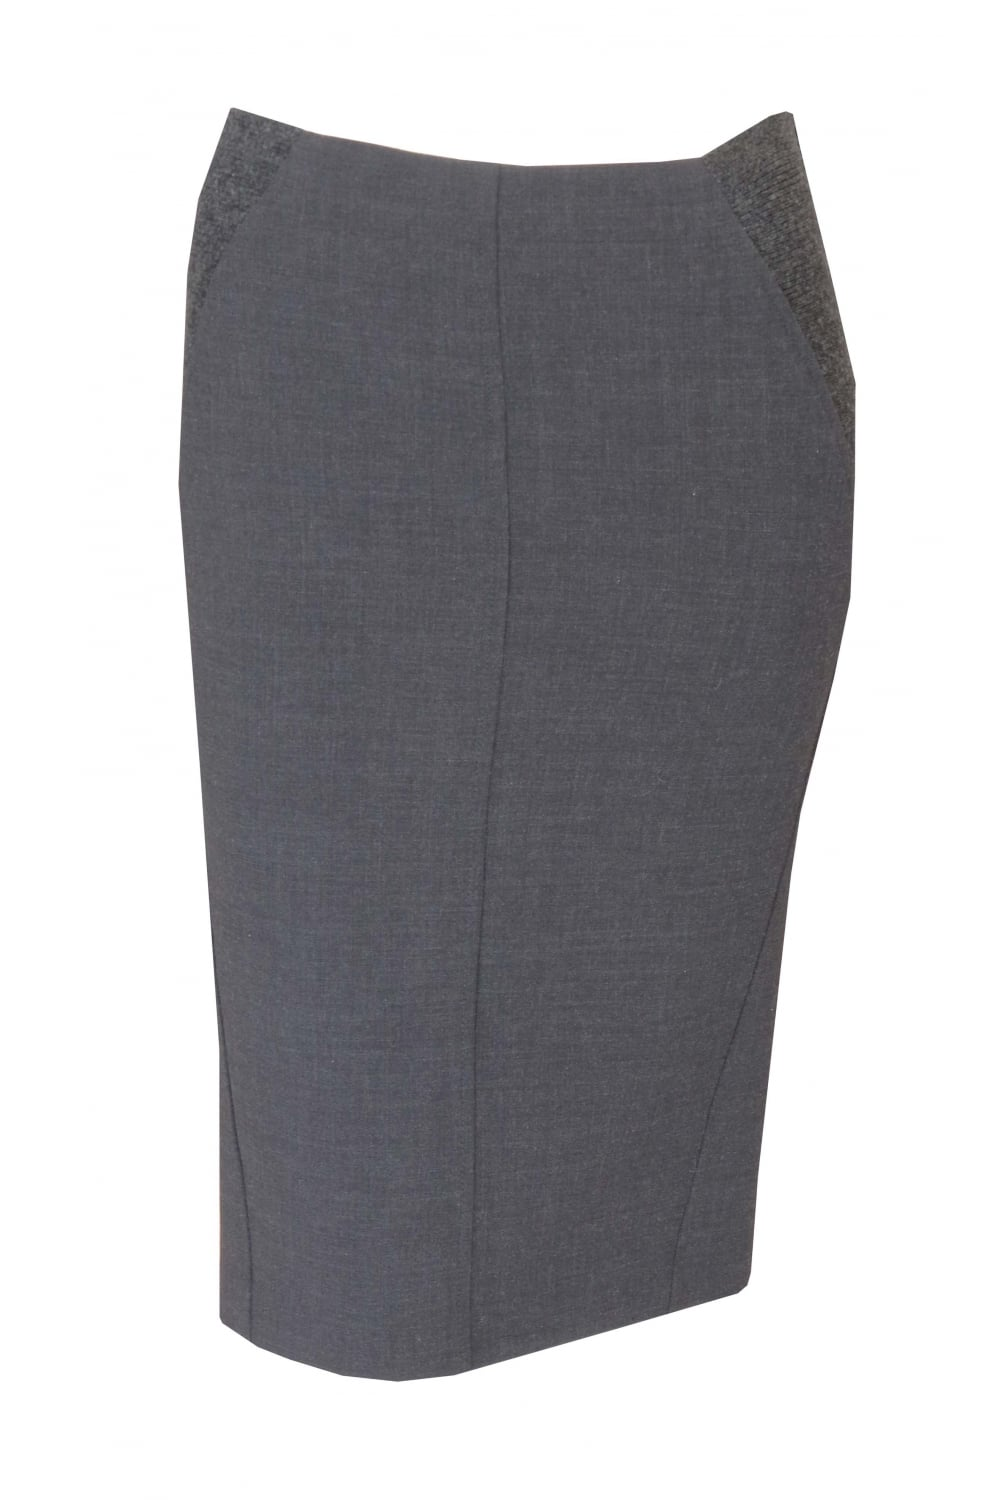 6236c2282b Brunello Cucinelli Women's Grey Wool Pencil Skirt With Panel Detail